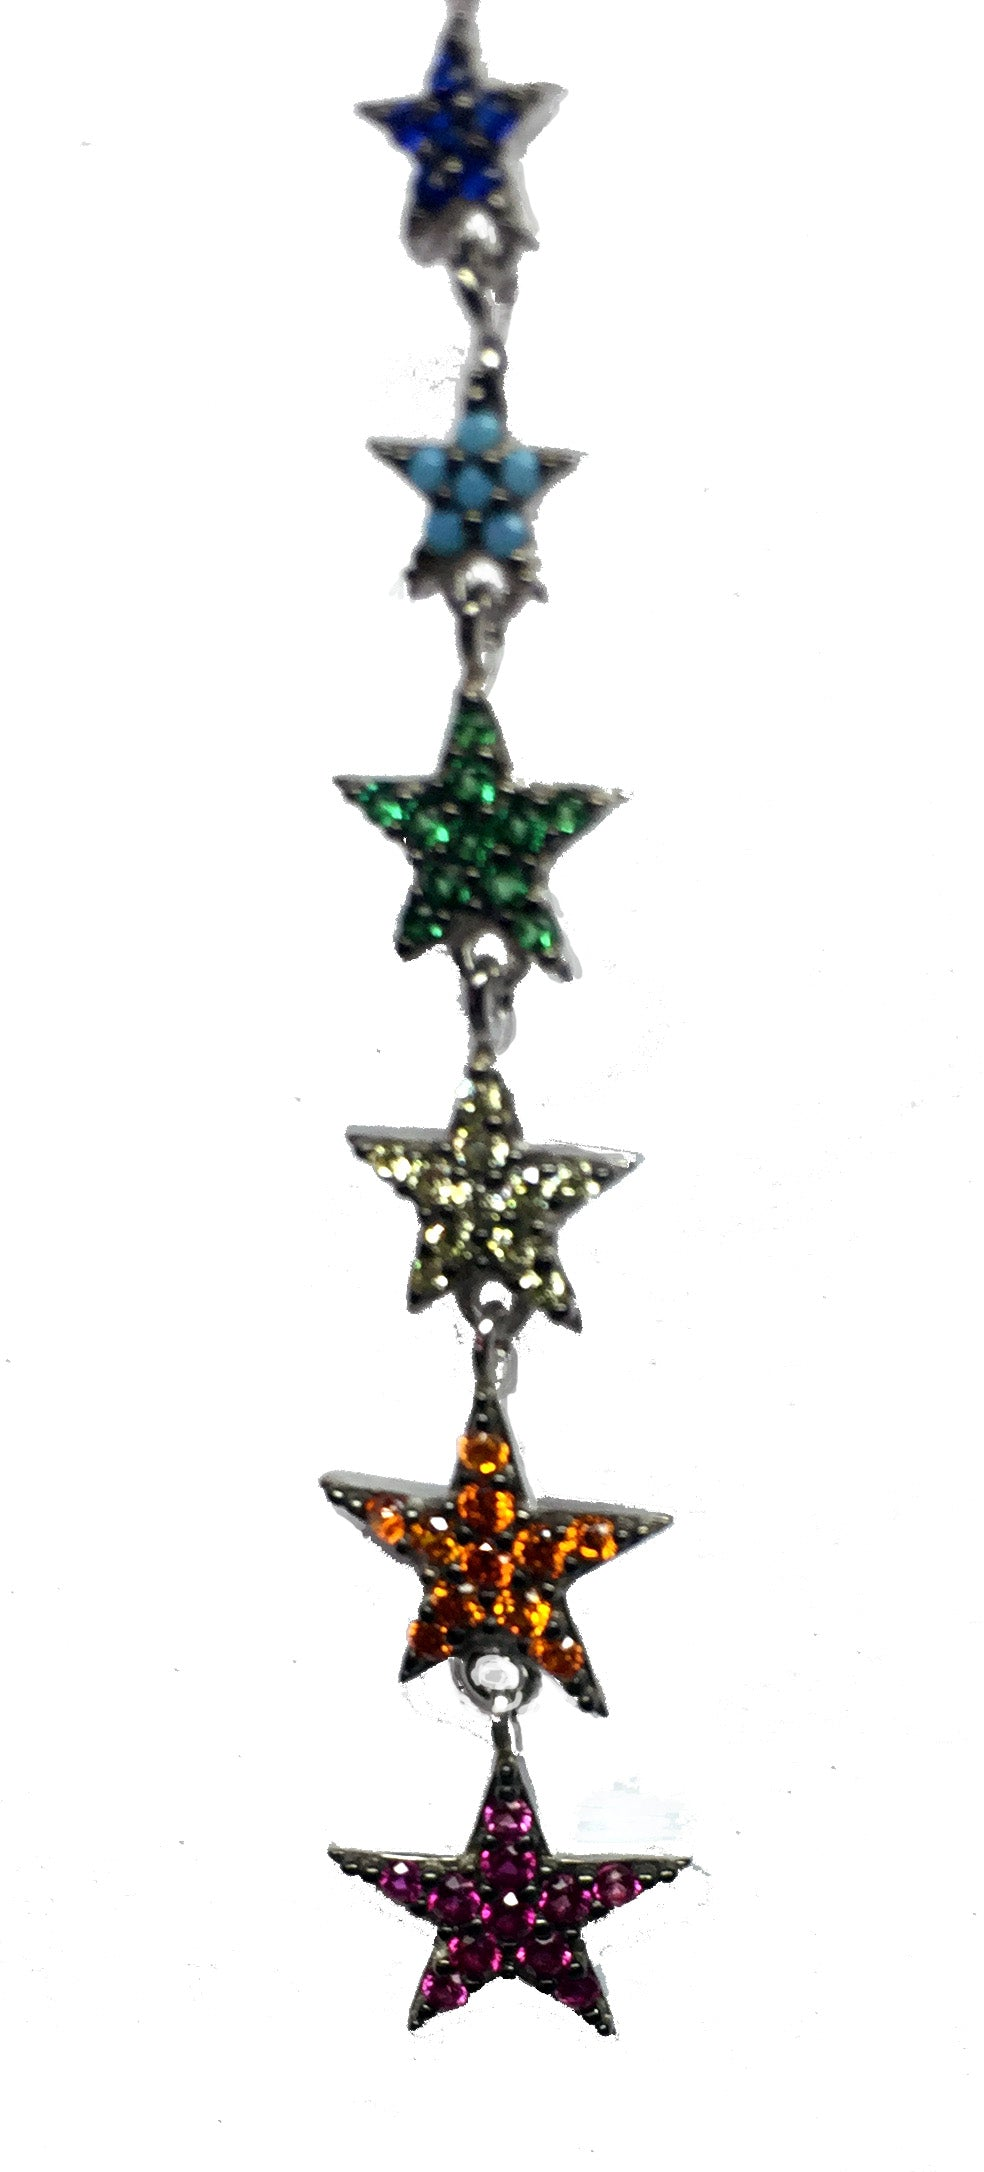 Celestial Wish Drop Earrings - The Firestone Collection - Fashion Jewelry & Accessories